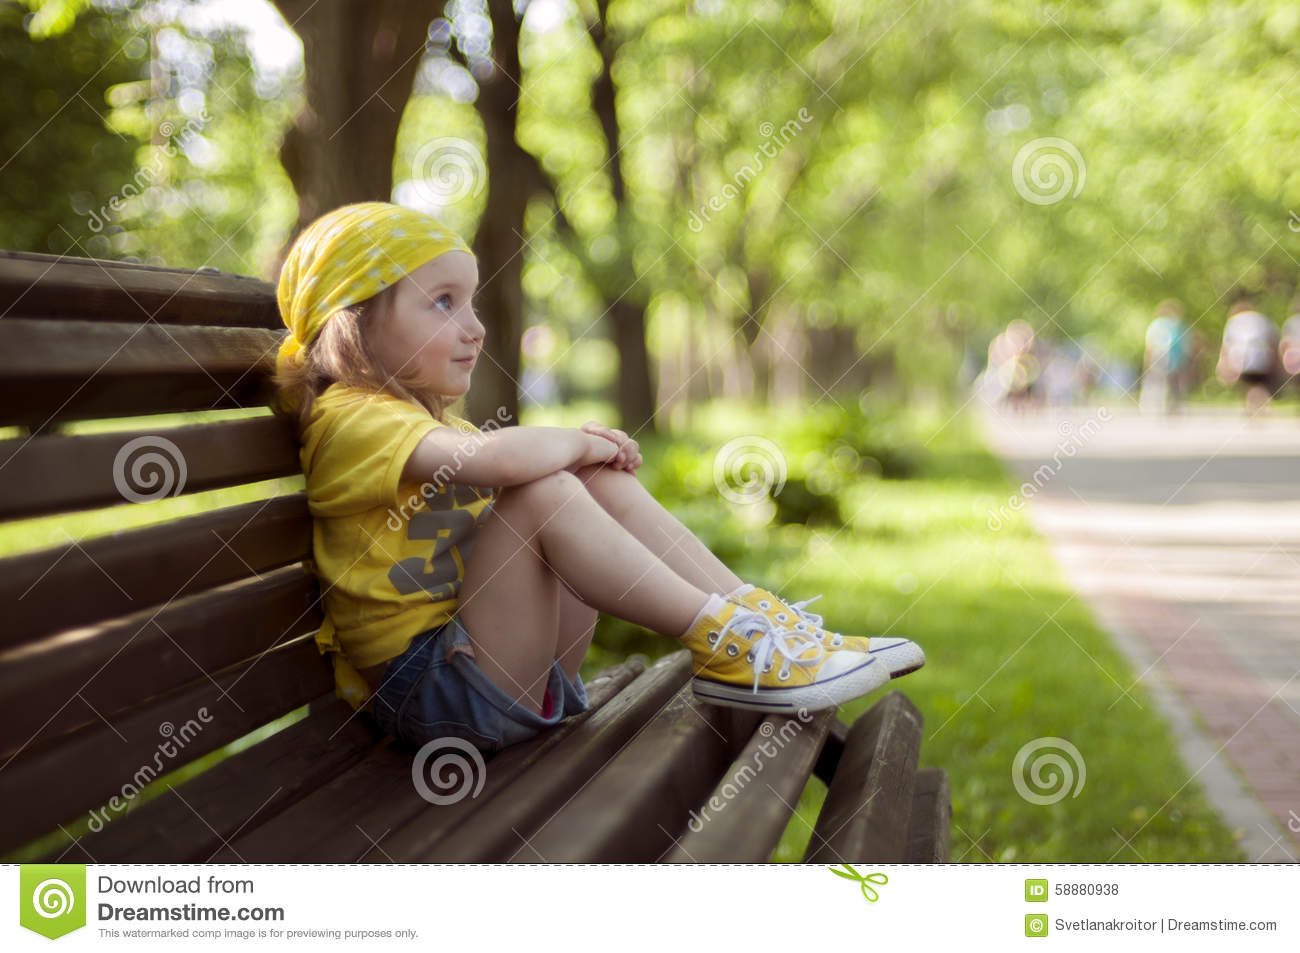 A little girl in a bright yellow bandanna and yellow snaekers sitting on a bench